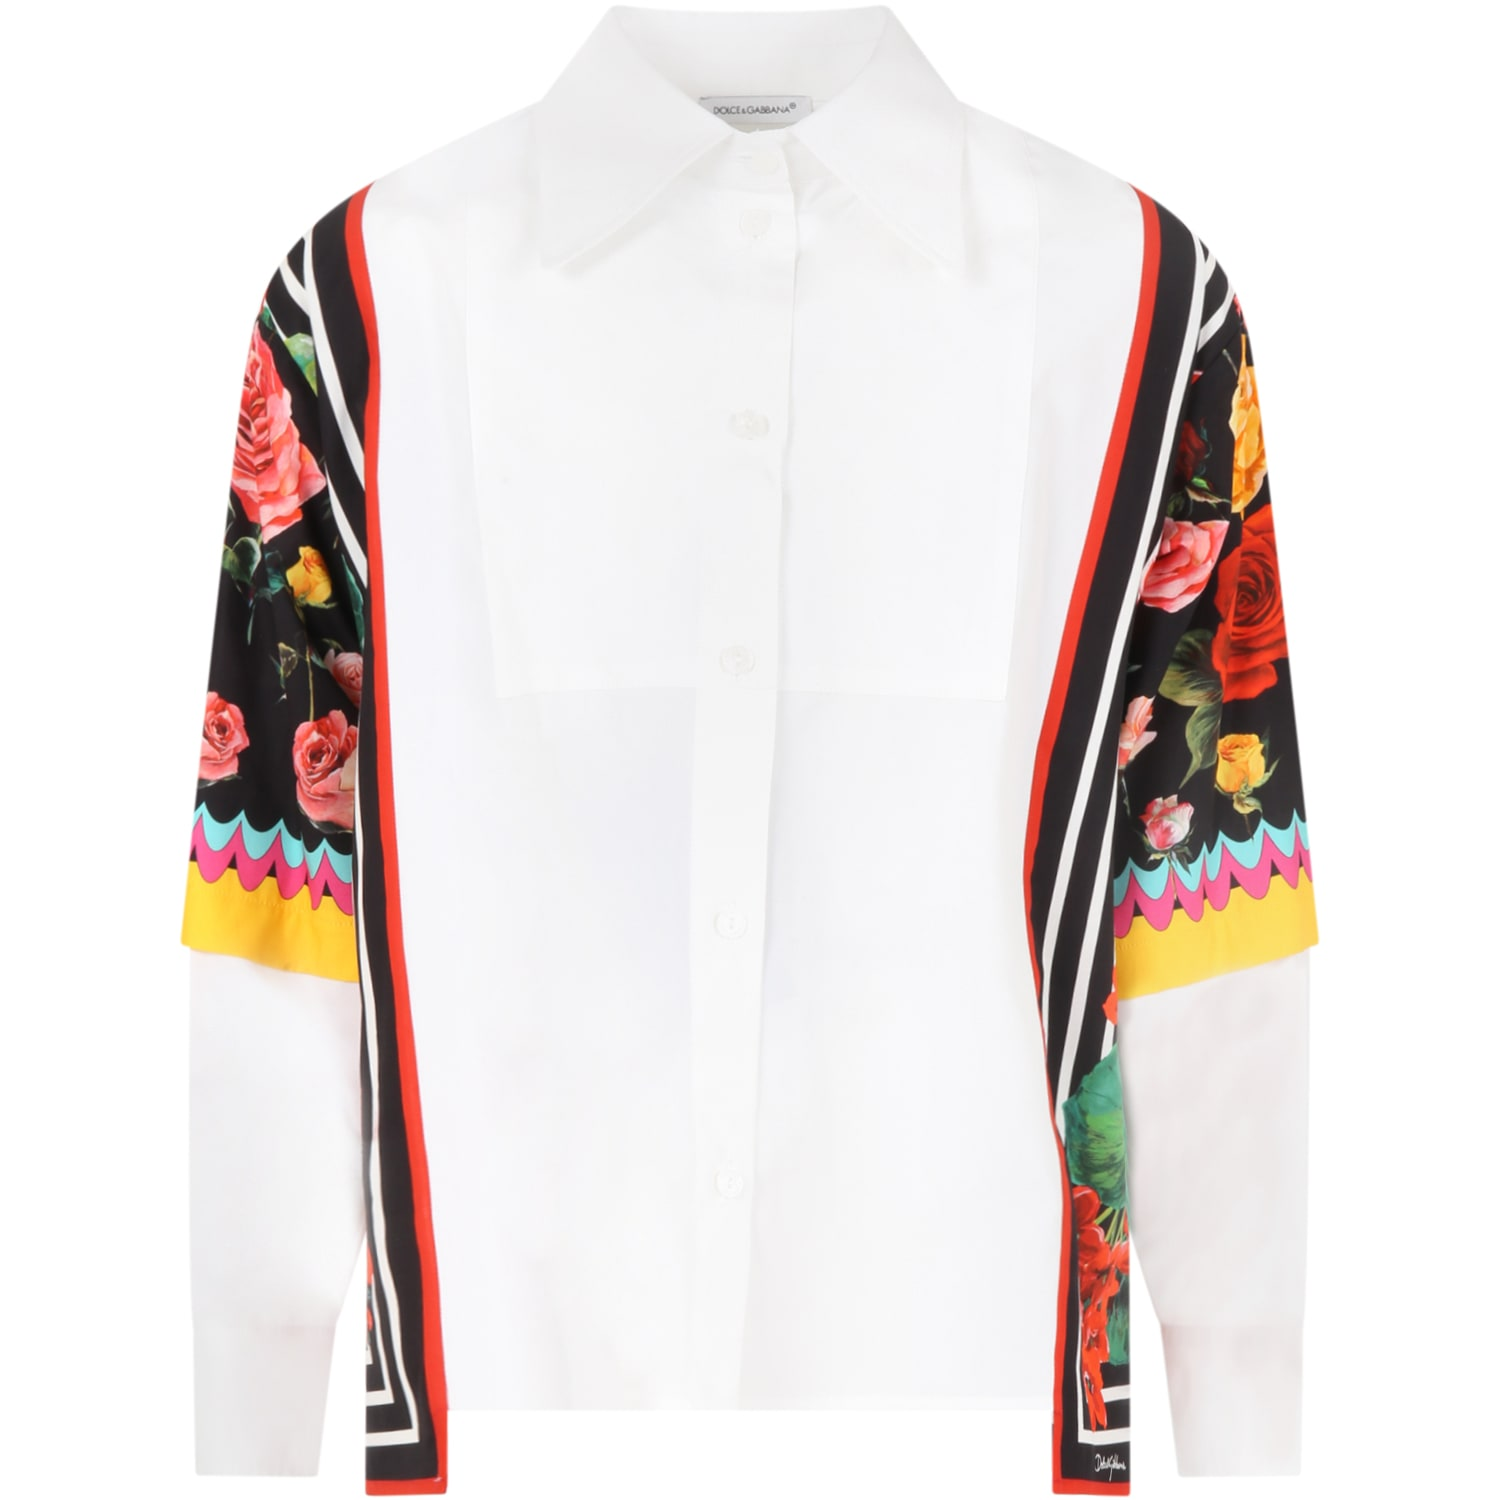 Dolce & Gabbana WHITE SHIRT FOR GIRL WITH ICONIC FLOWERS